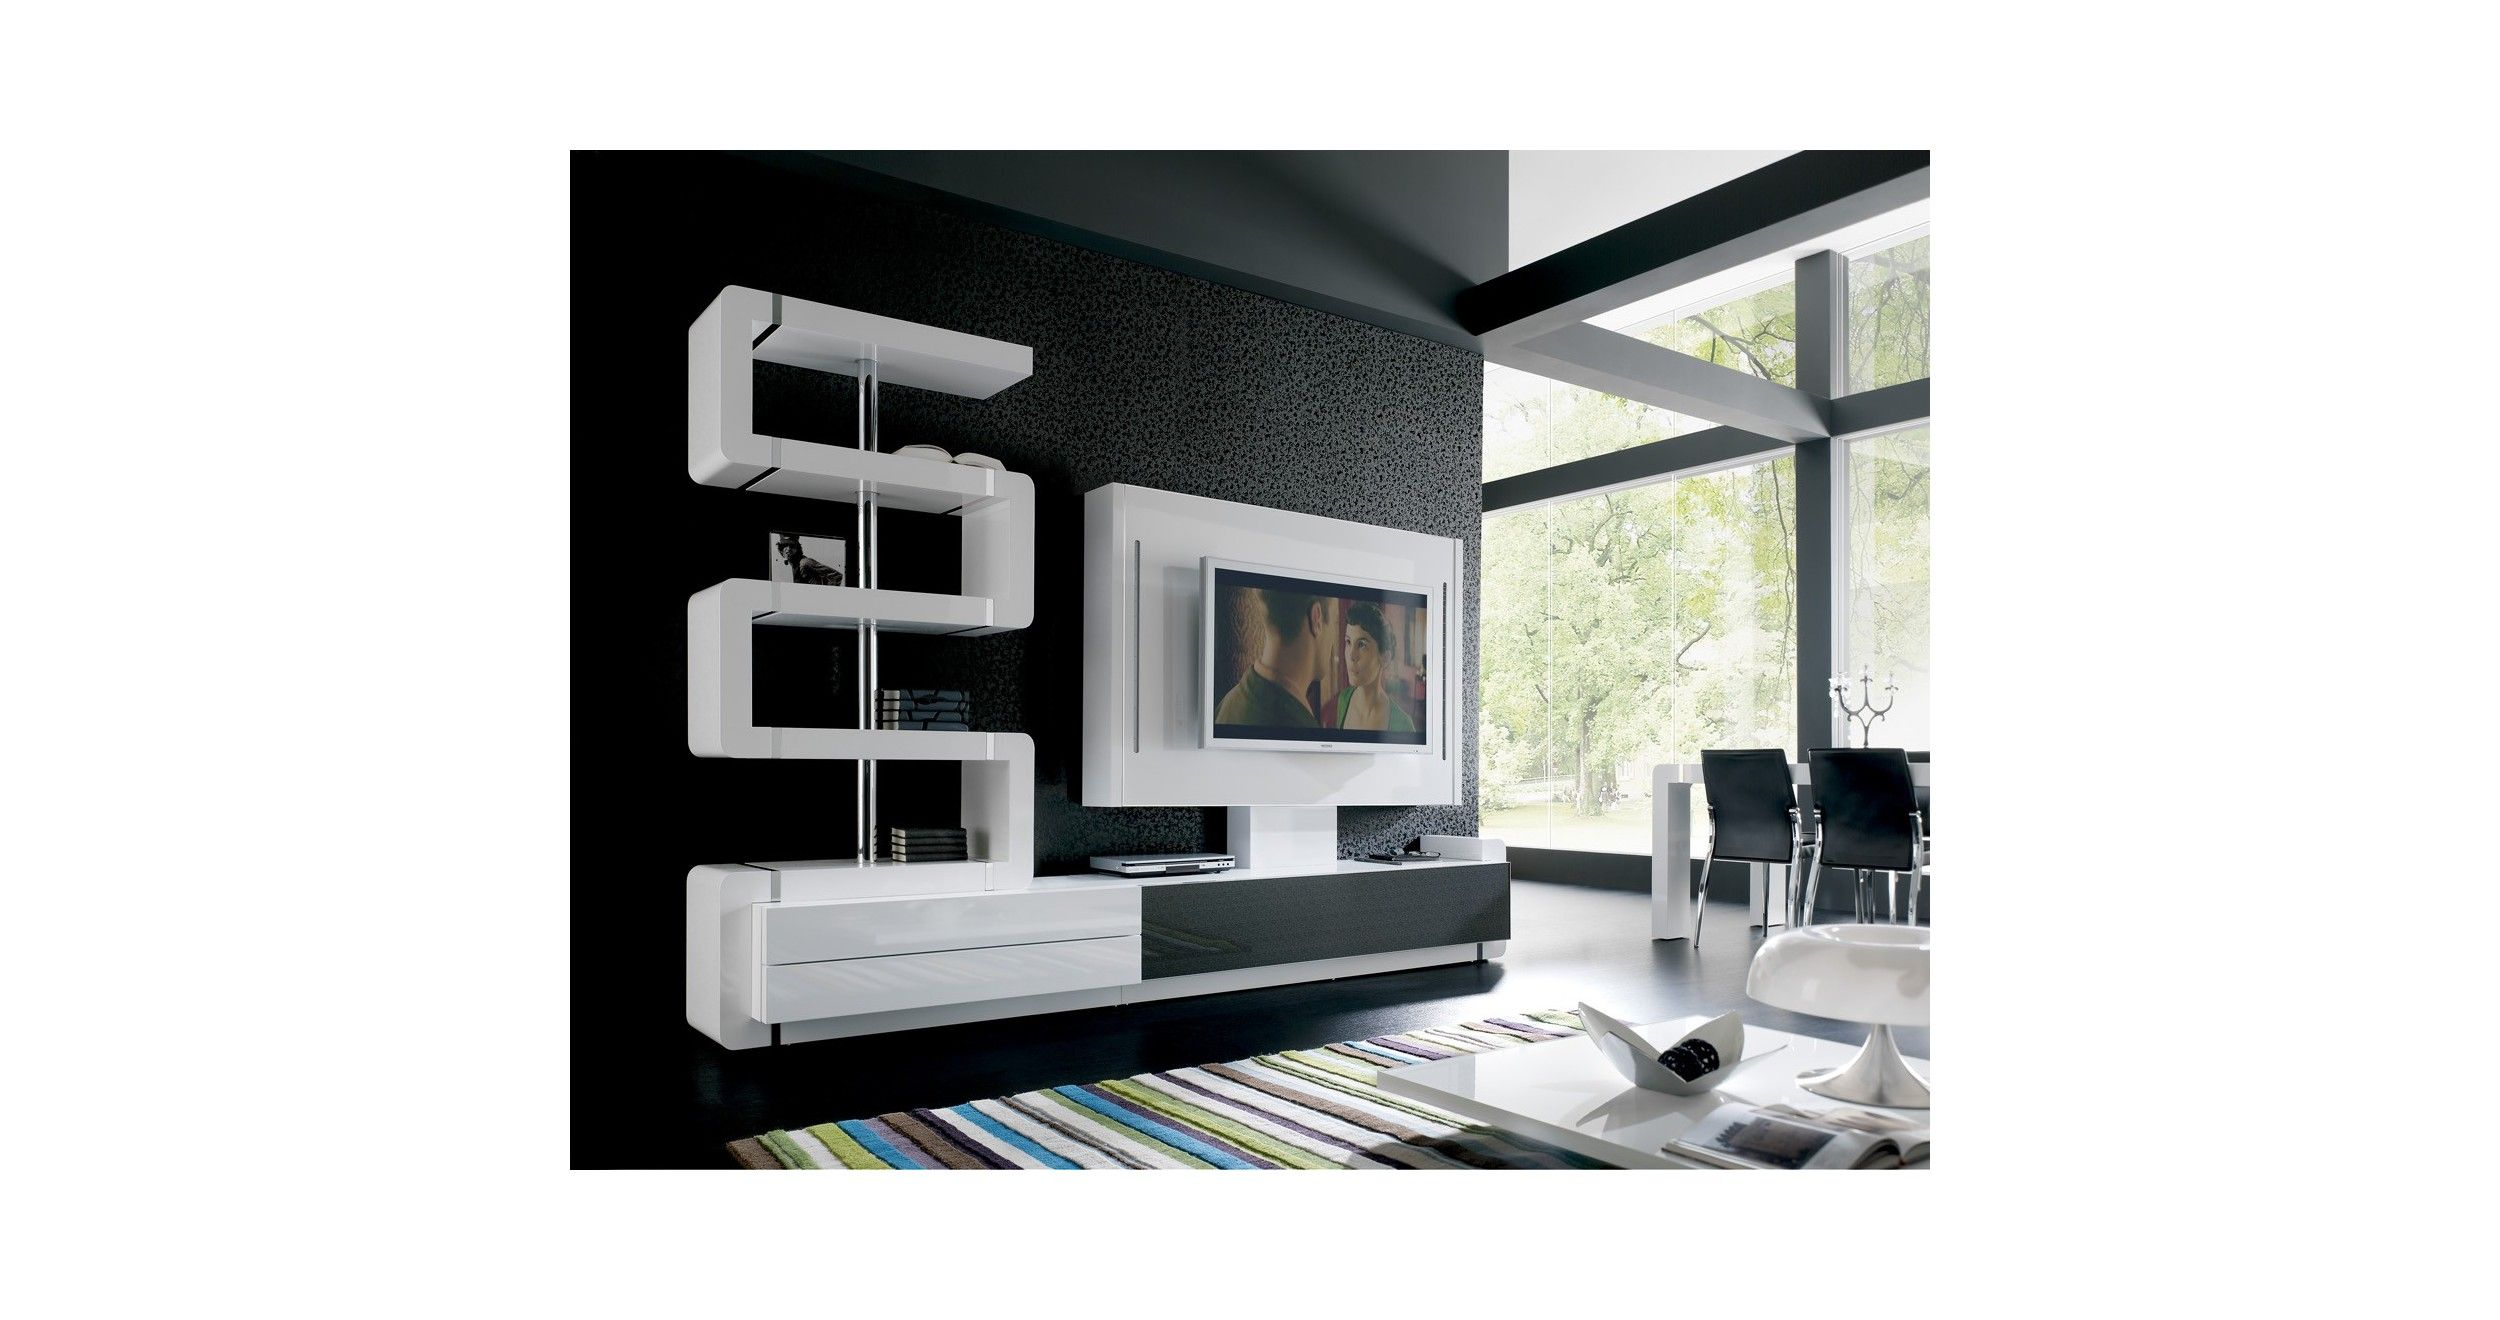 Dormitorios Modernos Blanco Brillo Mueble De Tv Quot200 Quot Modular Lacado Blanco Brillo Recamara